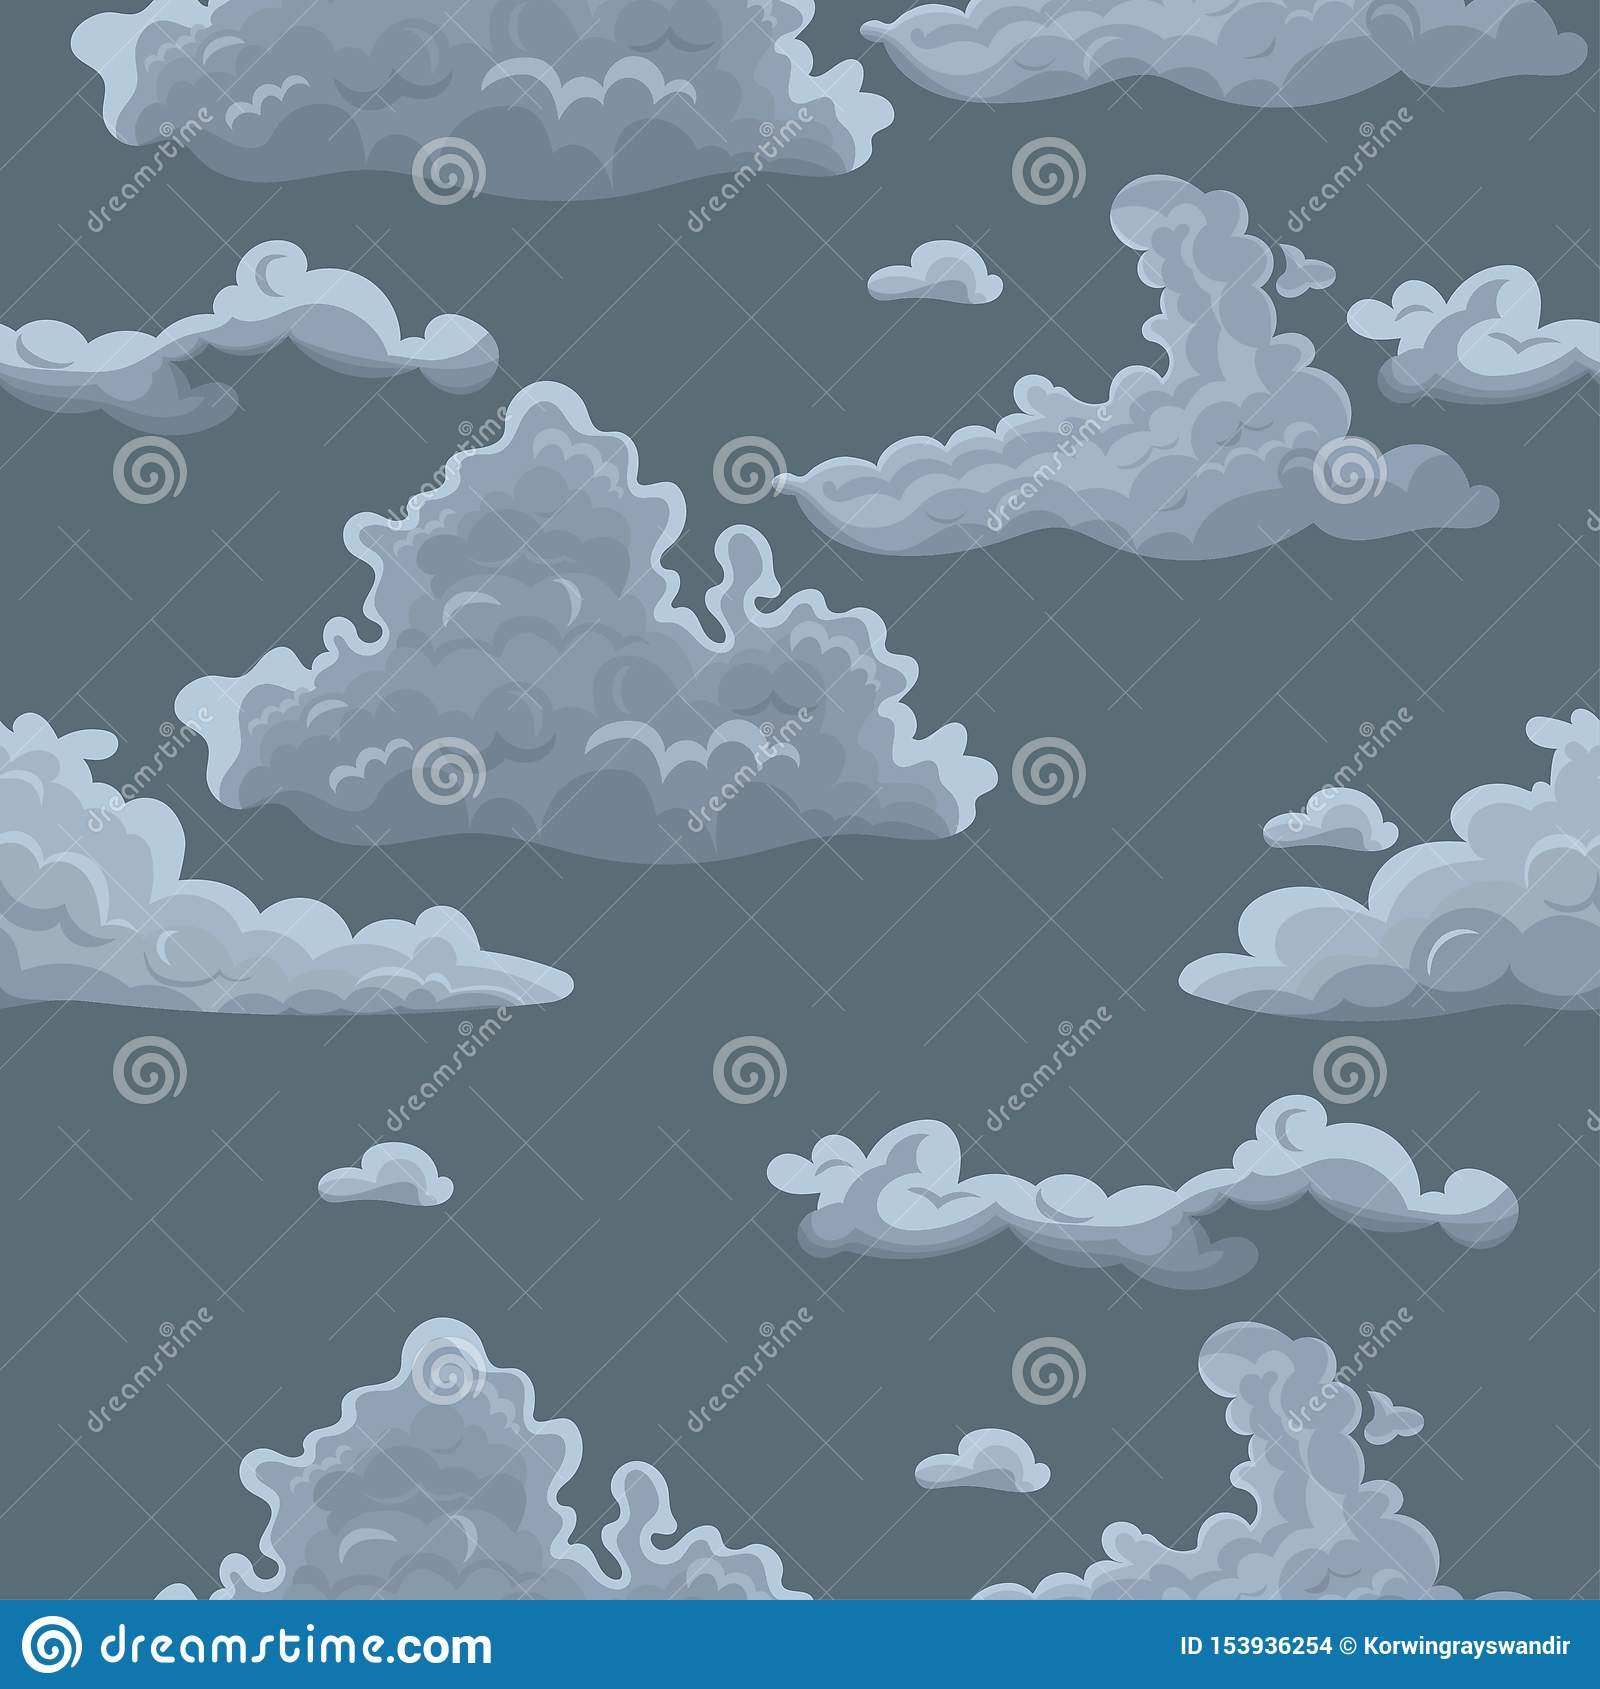 Seamless texture with clouds. Vector template for textile, wrapping paper and other